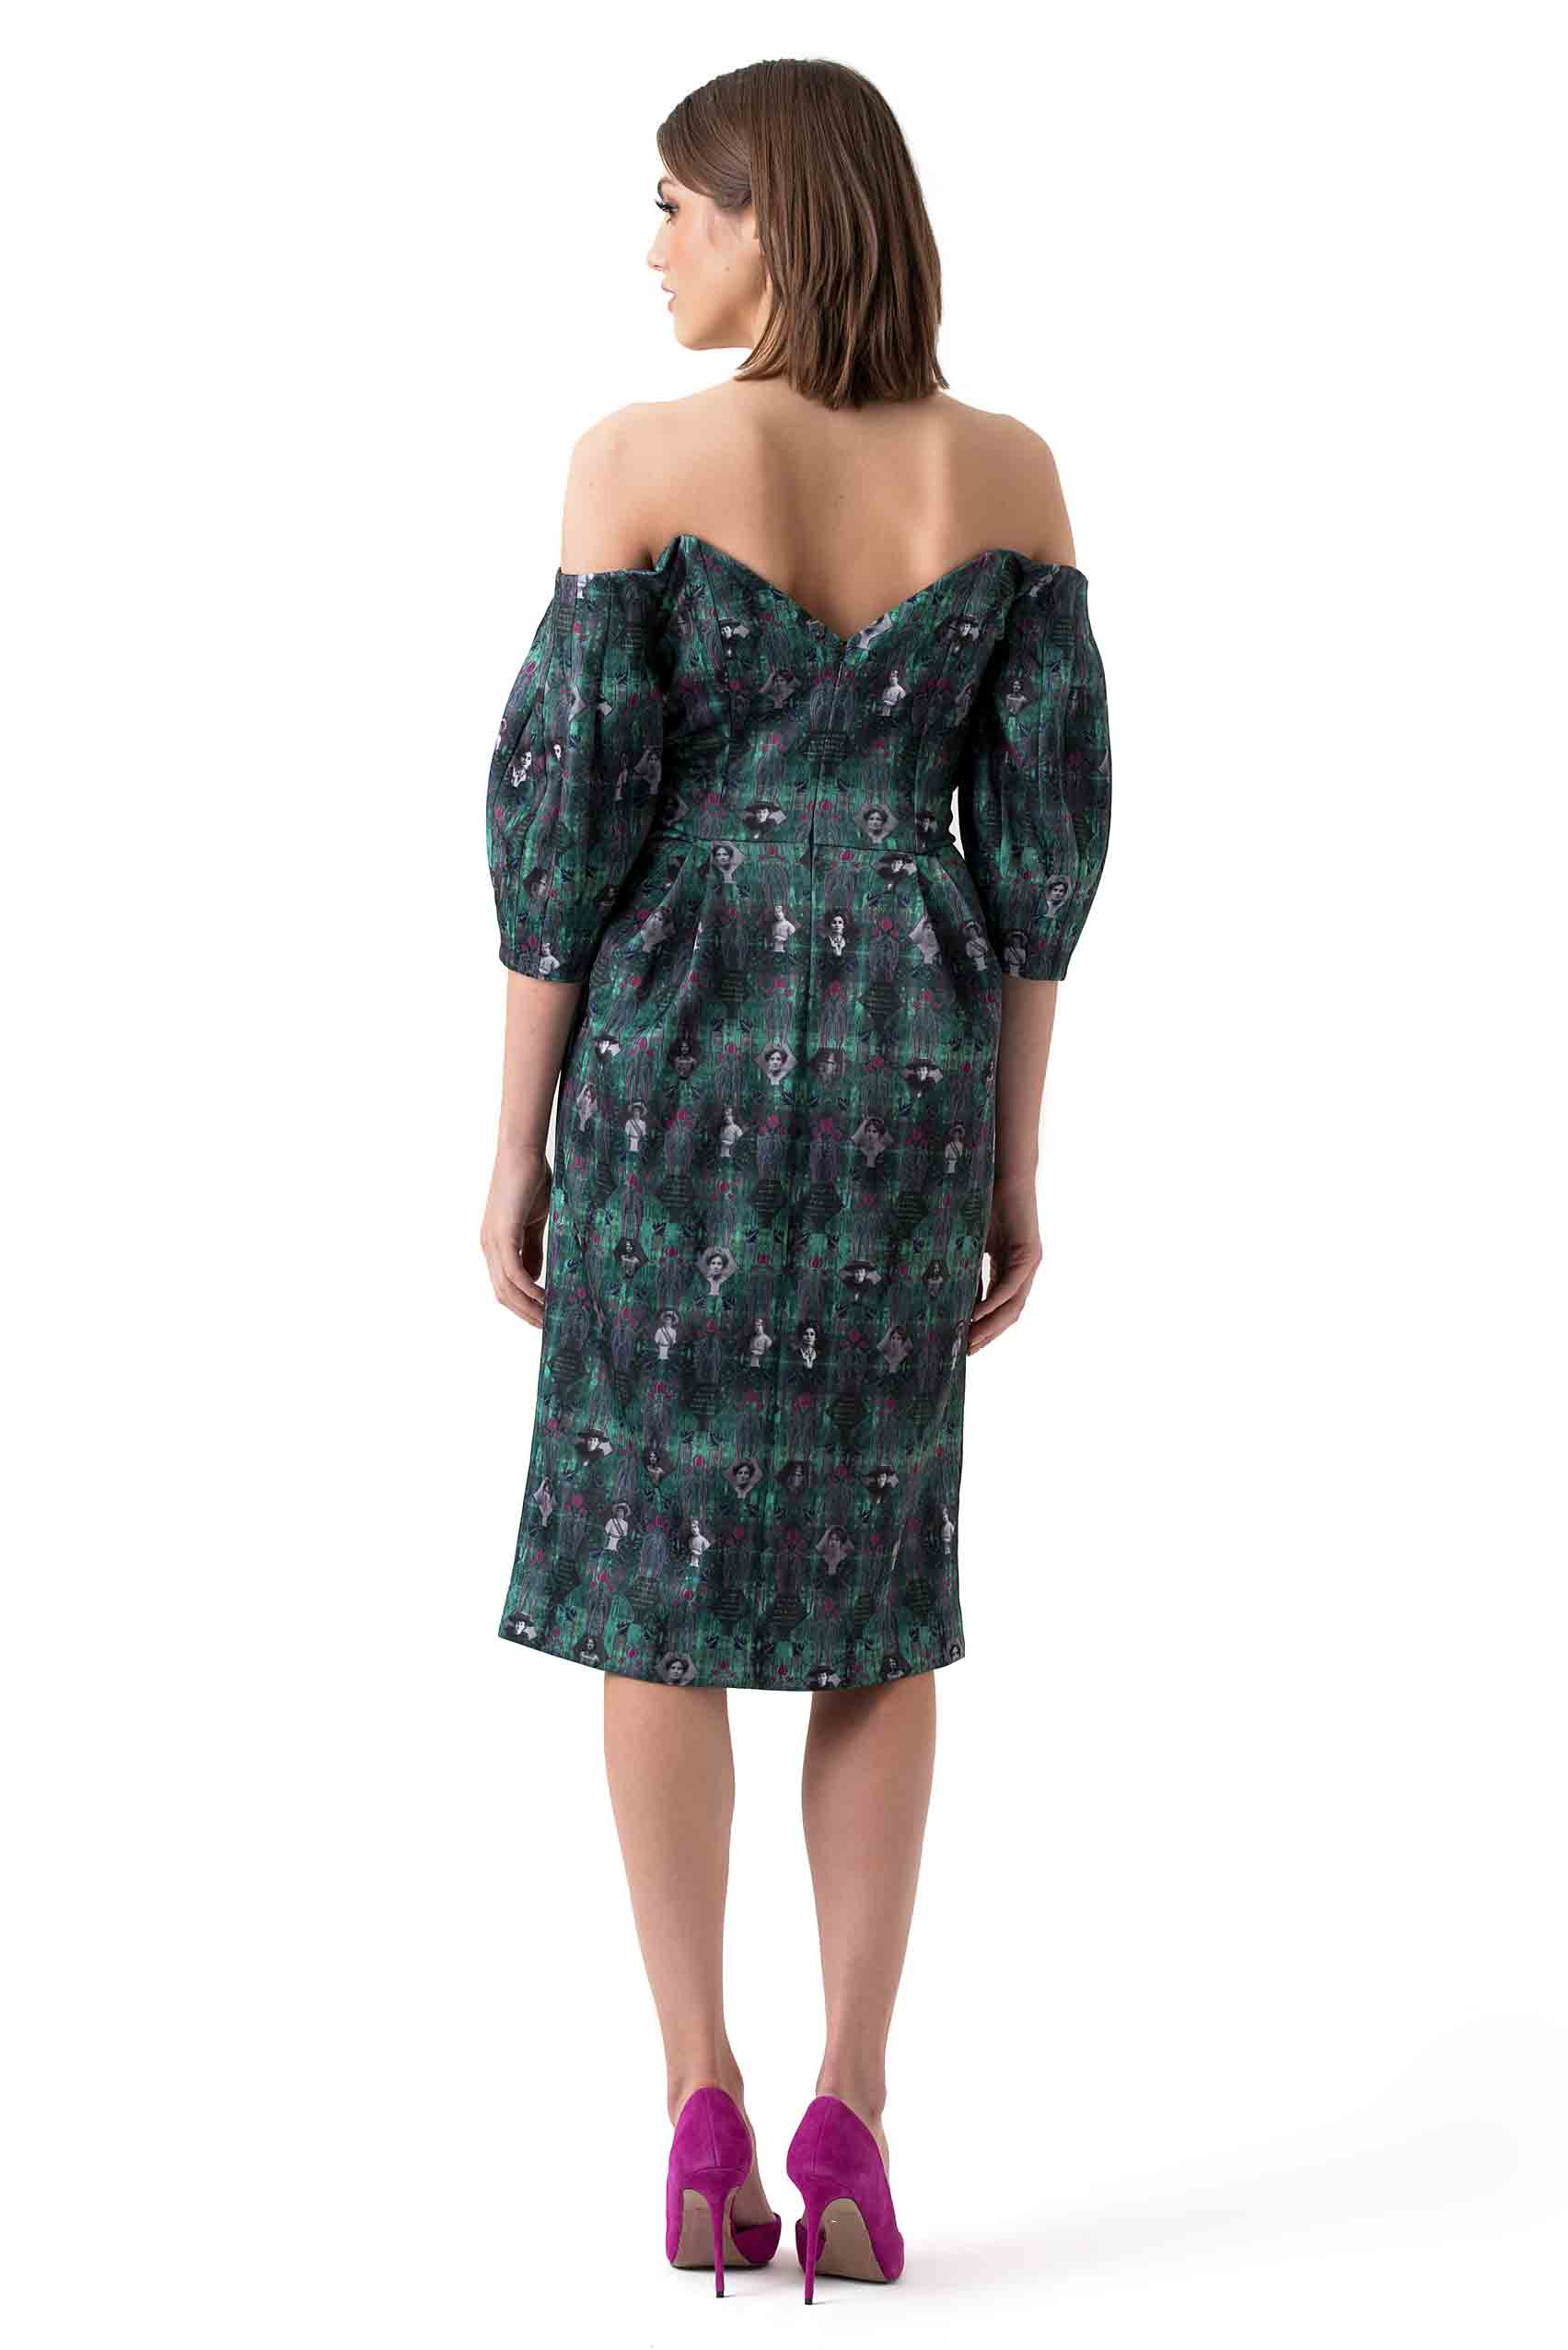 Morv London Green Printed Hedi Dress